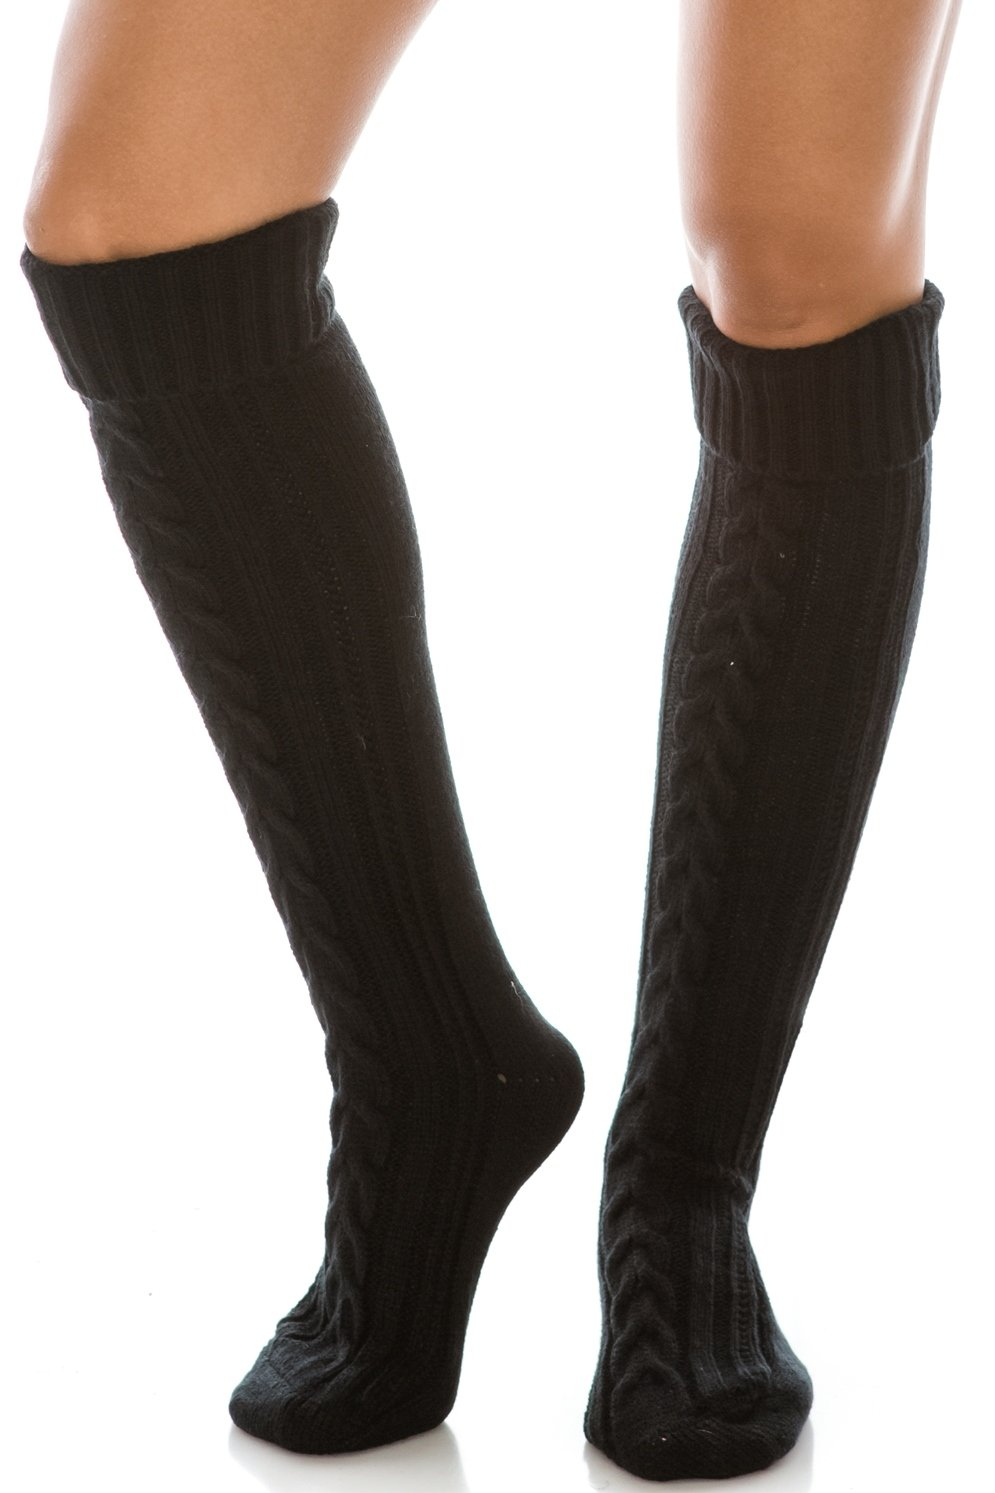 HatQuarters Braided Knit Long Boot Socks, Warm Knee High Solid Color Cuffed Leg Warmers (Black)